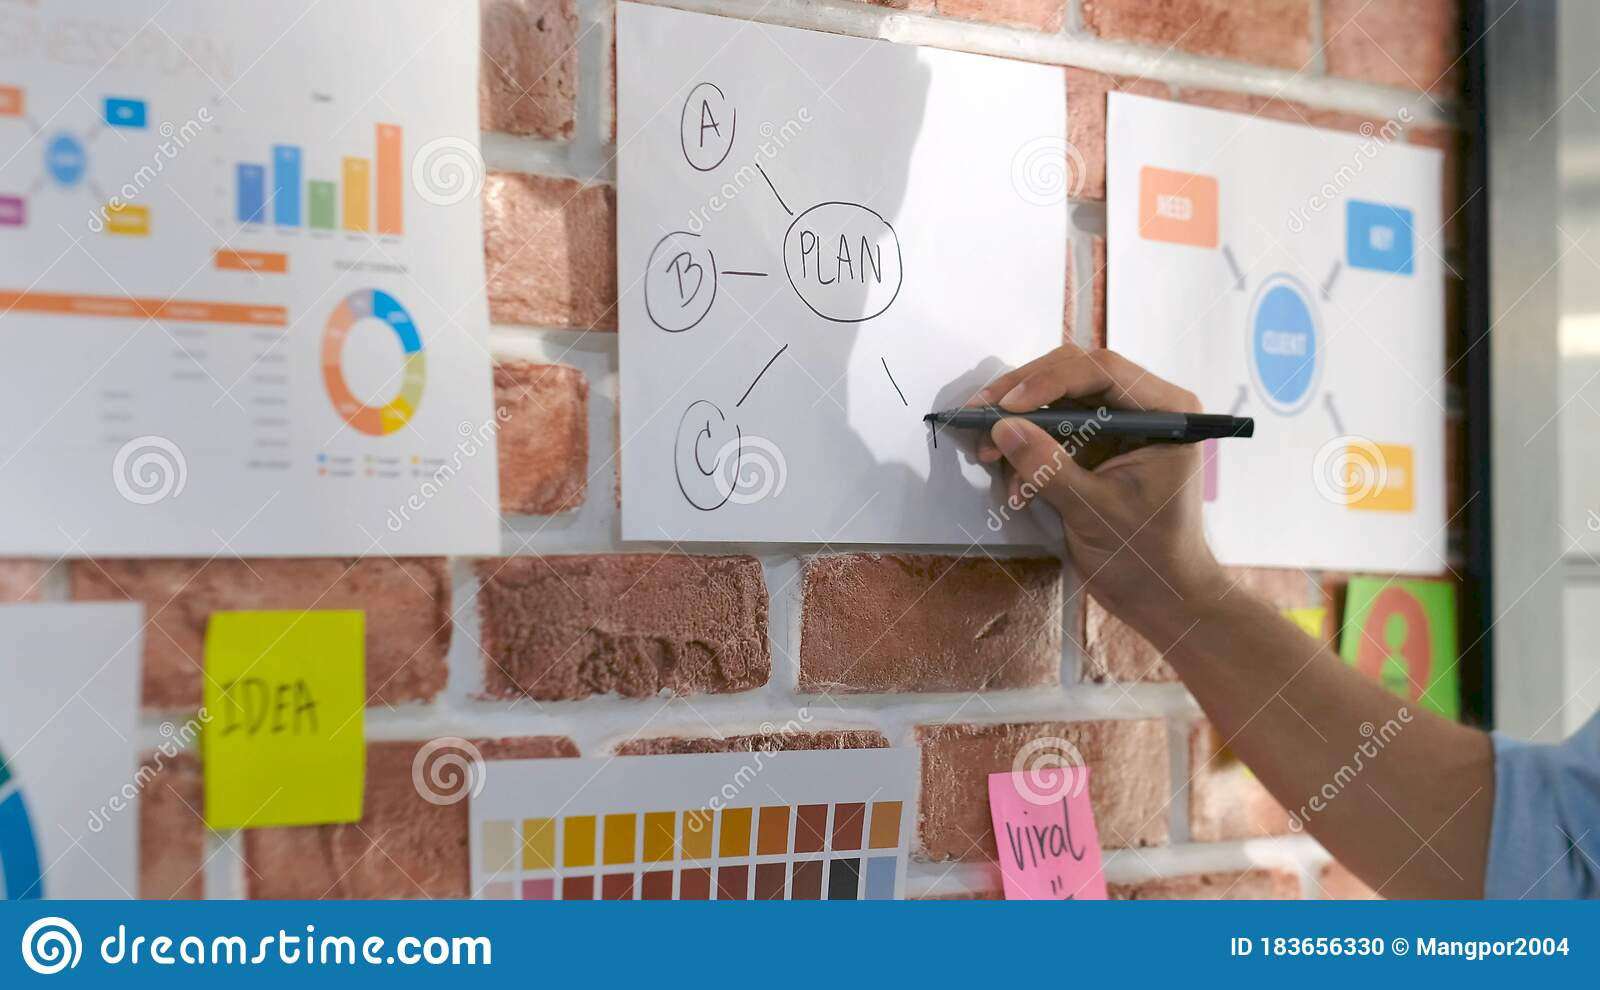 Design And Think Close Up Of Creative Design Man Hand Writting Plan On Paper Work Ideas At Office Wall With Concentration Asia Stock Photo Image Of Note Focus 183656330